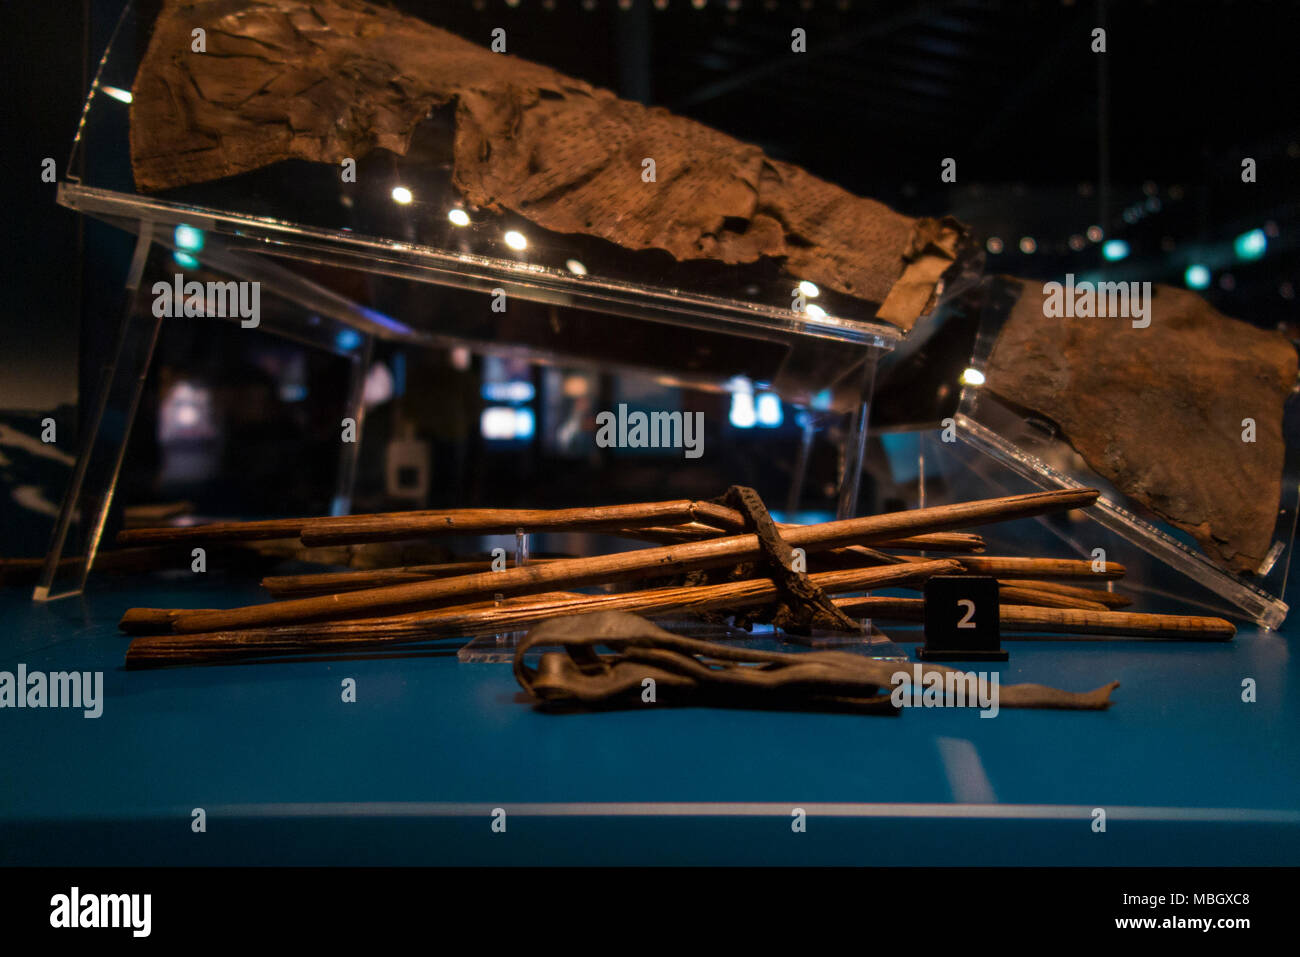 Arrows, bag – quiver – & an arrow spacer ; remains & artefacts found on wreck of The Mary Rose. The Mary Rose Museum, Portsmouth historic dockyard UK - Stock Image